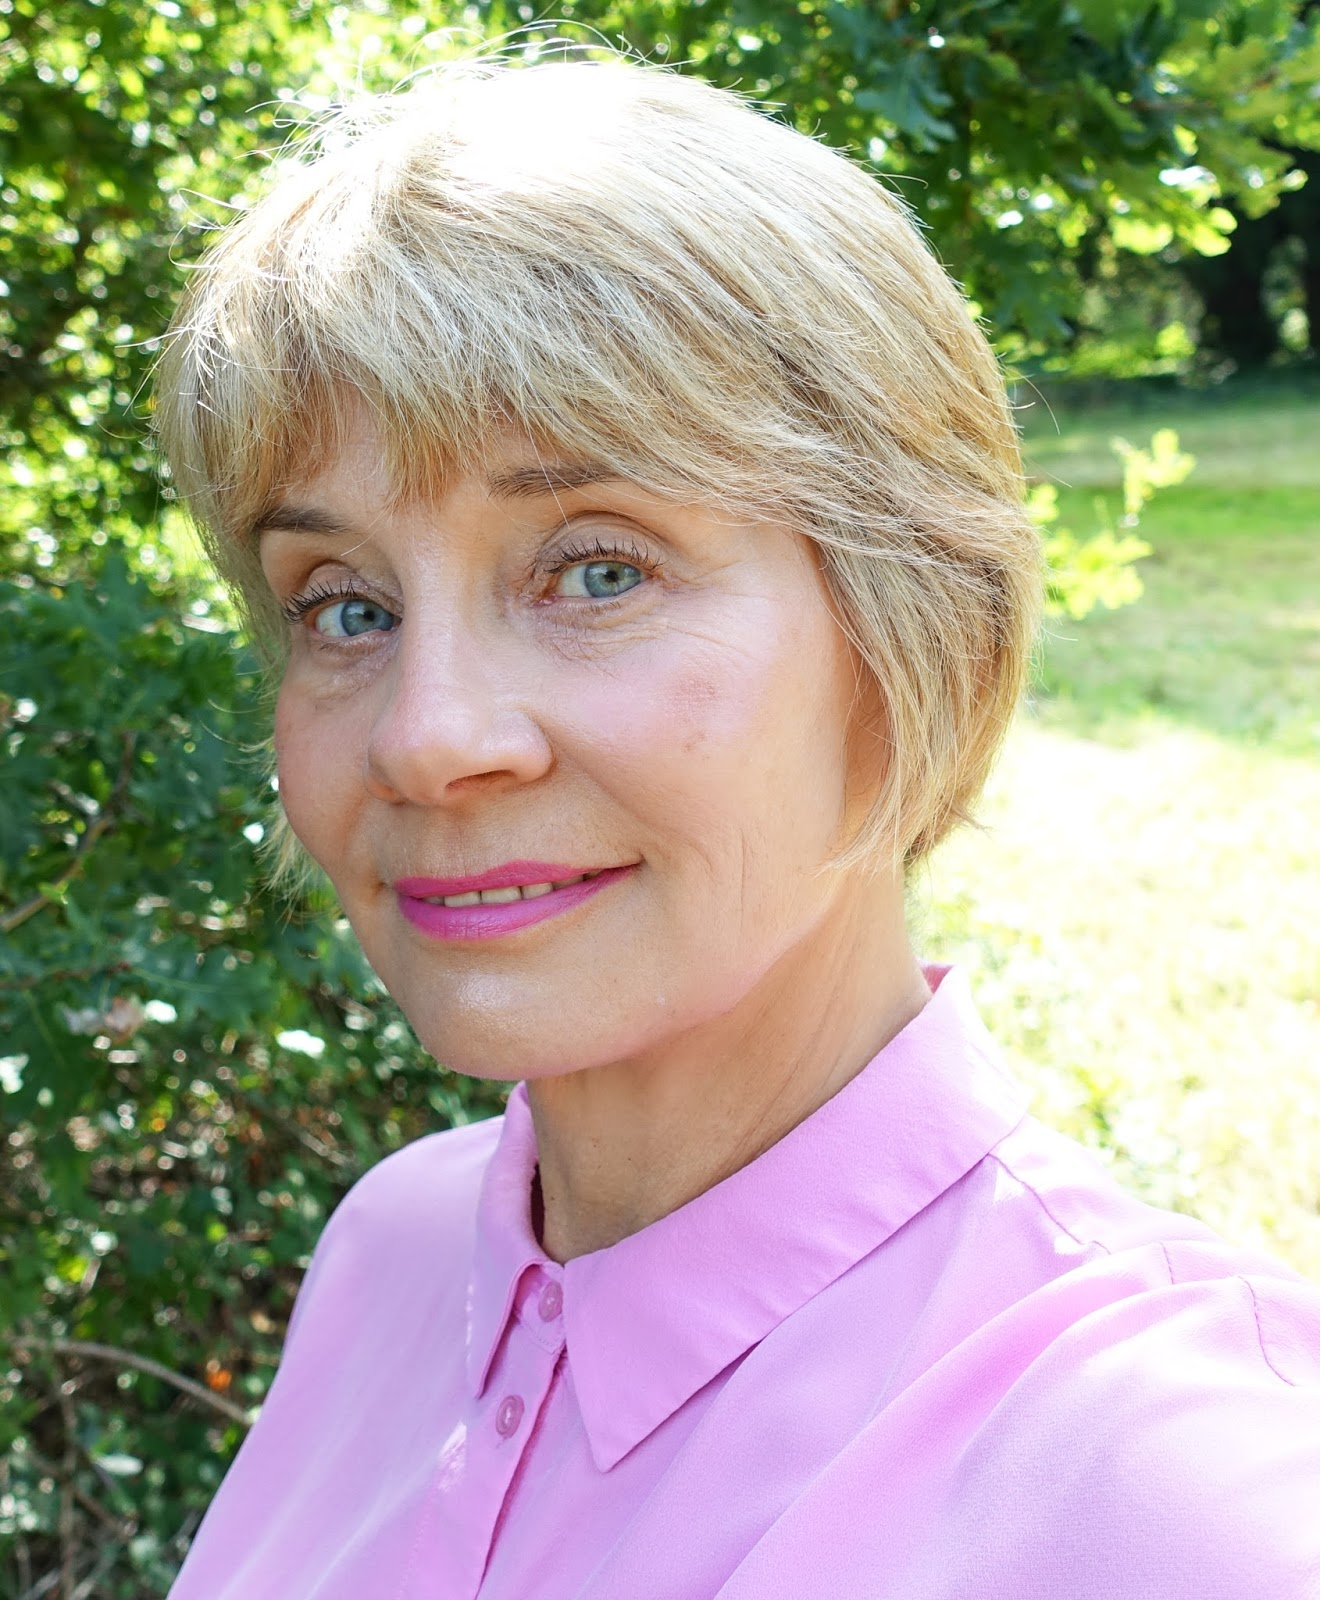 Gail Hanlon from over 40s women's blog Is This Mutton